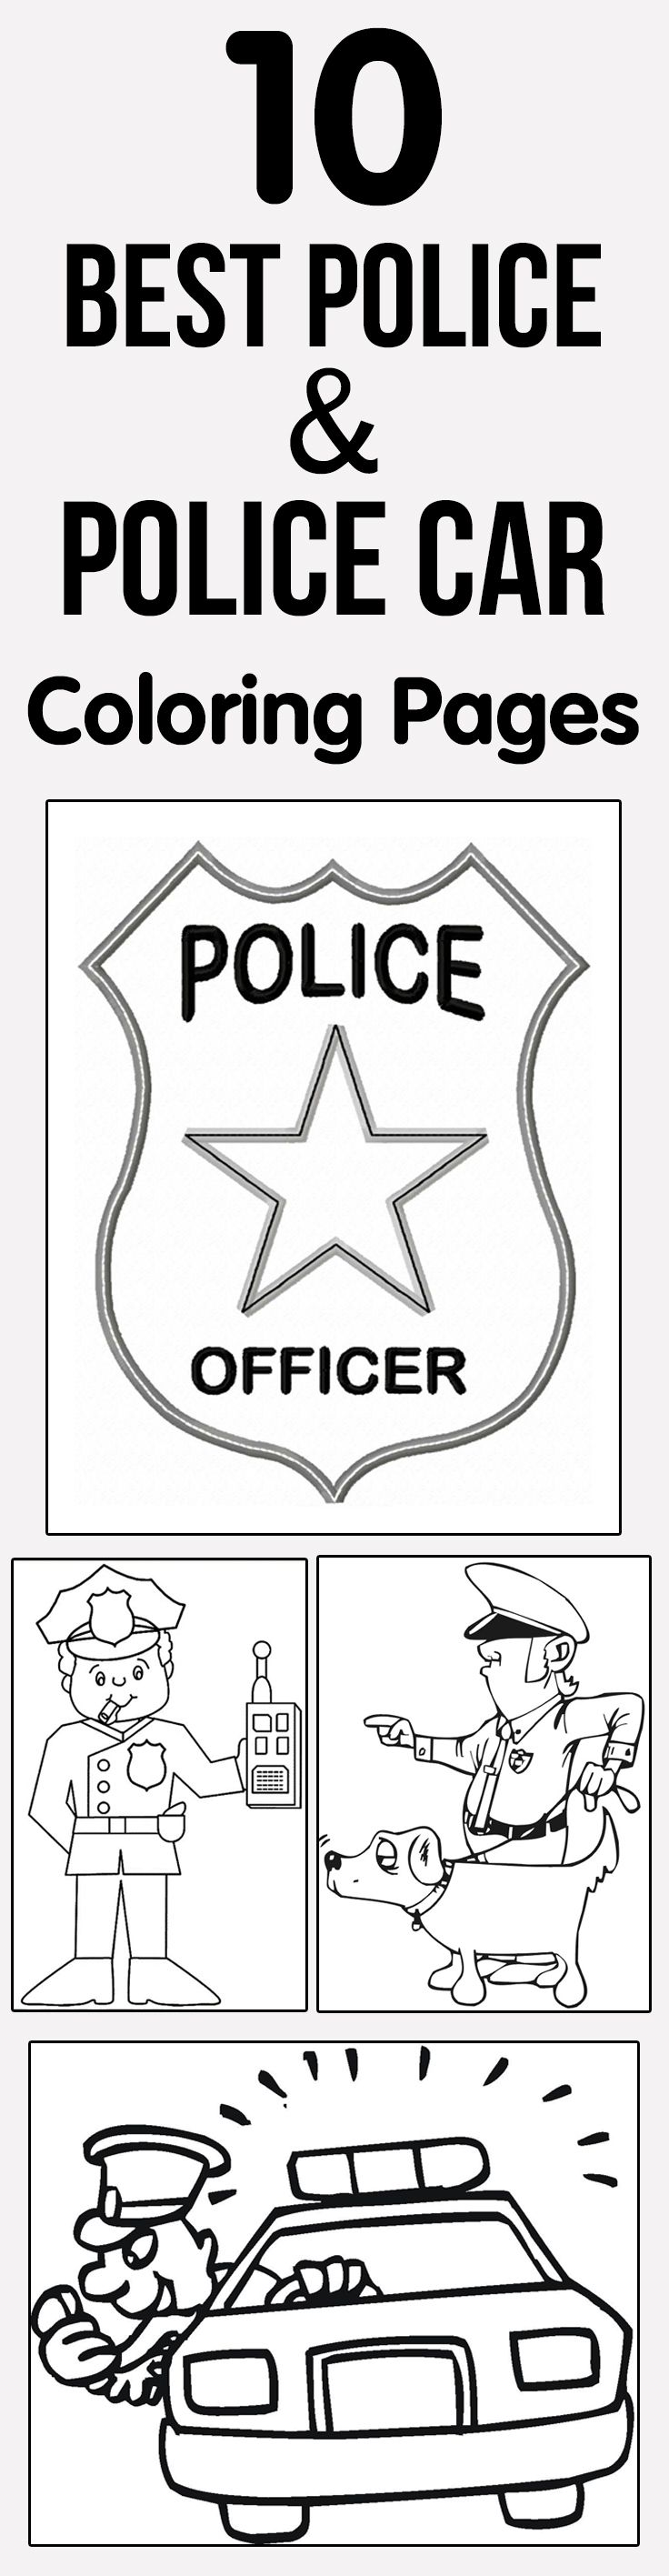 childs coloring pages about police - photo#35